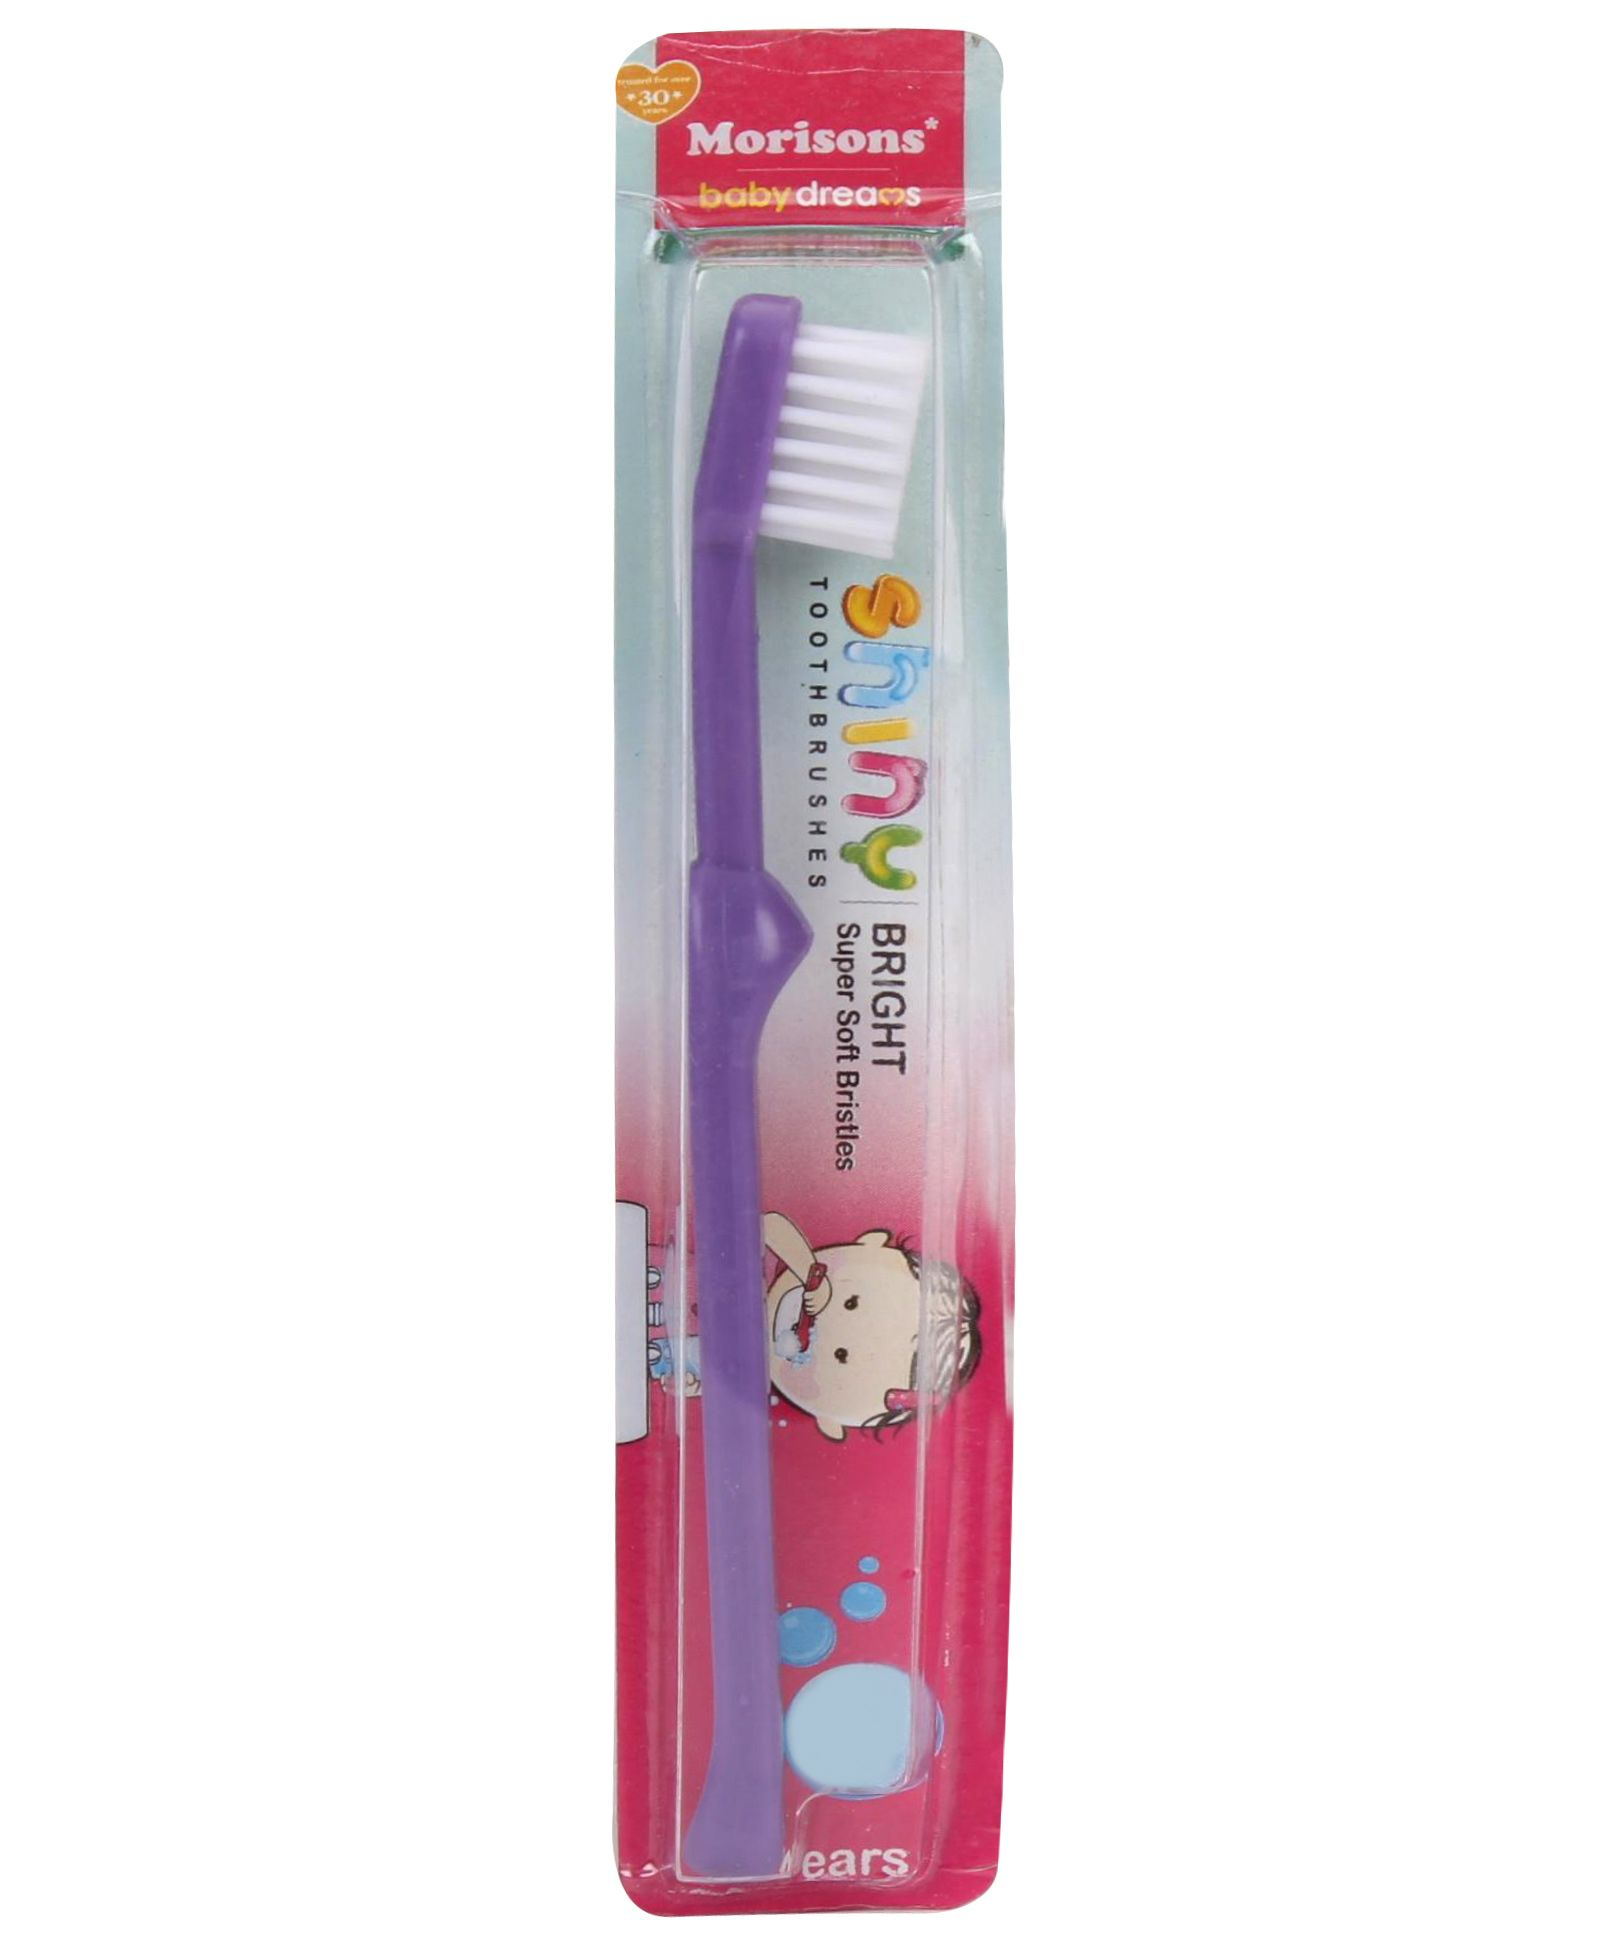 Morisons Baby Dreams Shiny Bright Tooth Brush - Purple